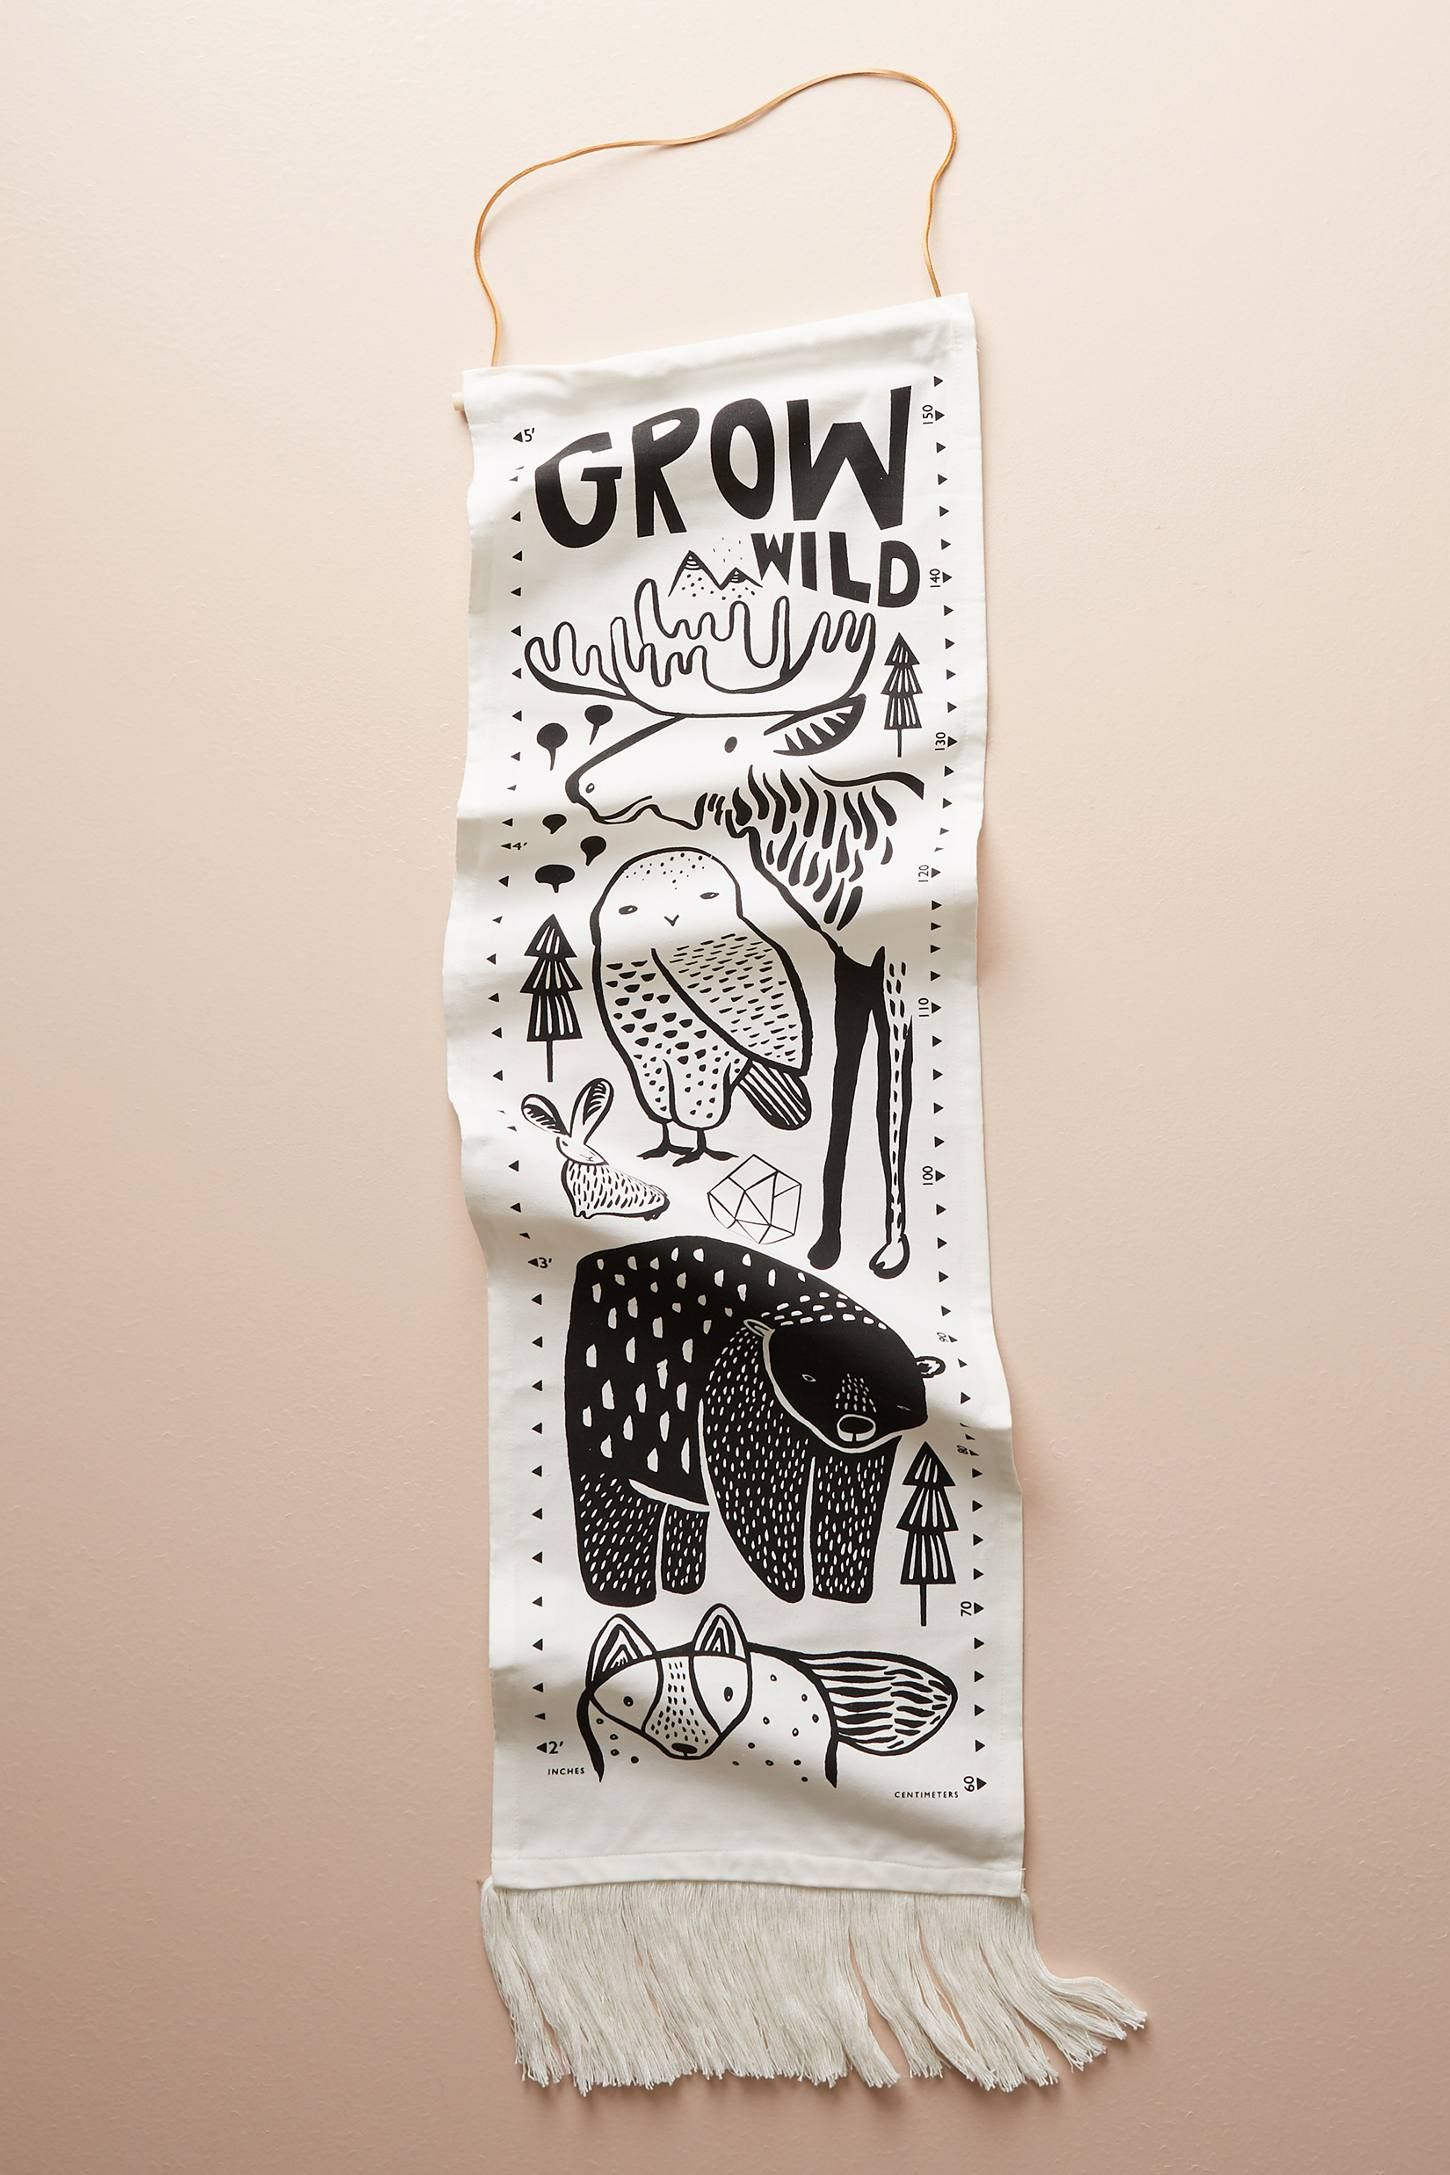 Little one growth chart growth charts nursery and babies little one growth chart nvjuhfo Images